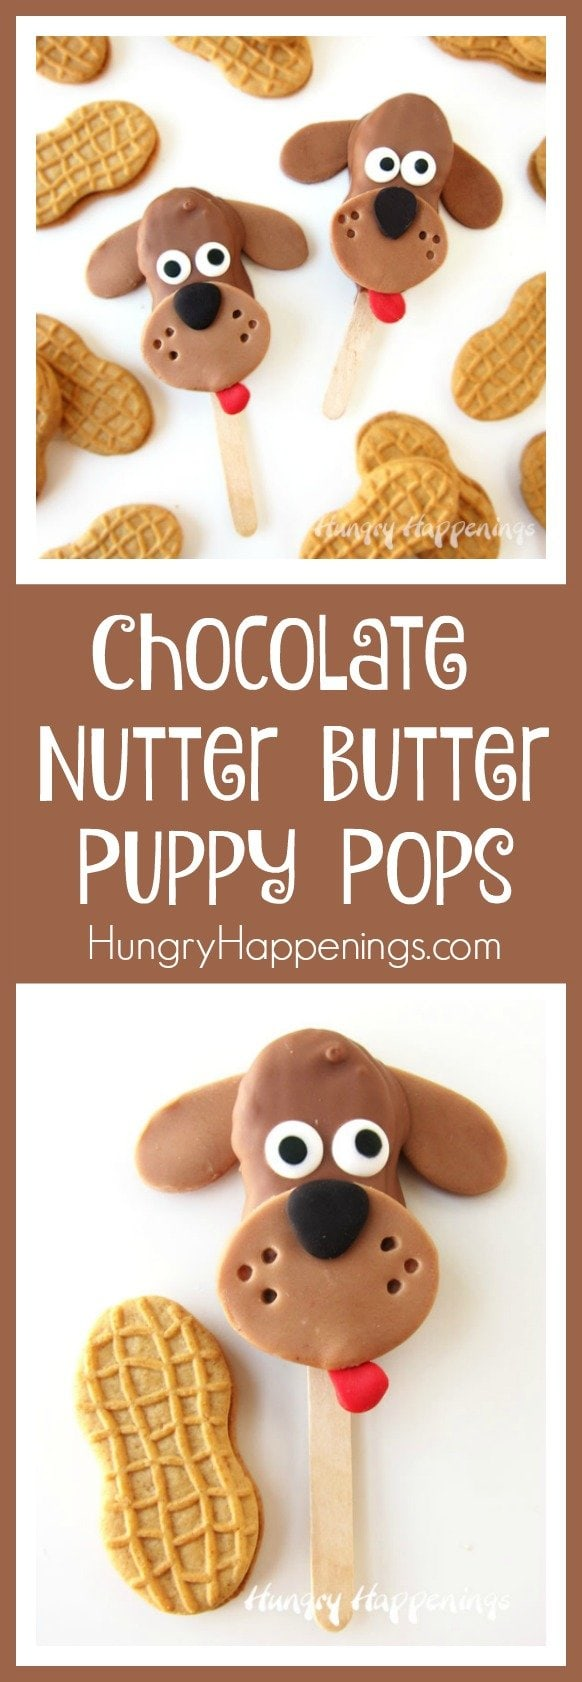 Puppies are so darn lovable and cute and they are hard to resist. These Chocolate Nutter Butter Puppy Pops with their floppy chocolate ears and sweet candy eyes are just as irresistible and will make sweet treats for Valentine's Day, puppy adoptions, and birthday parties.